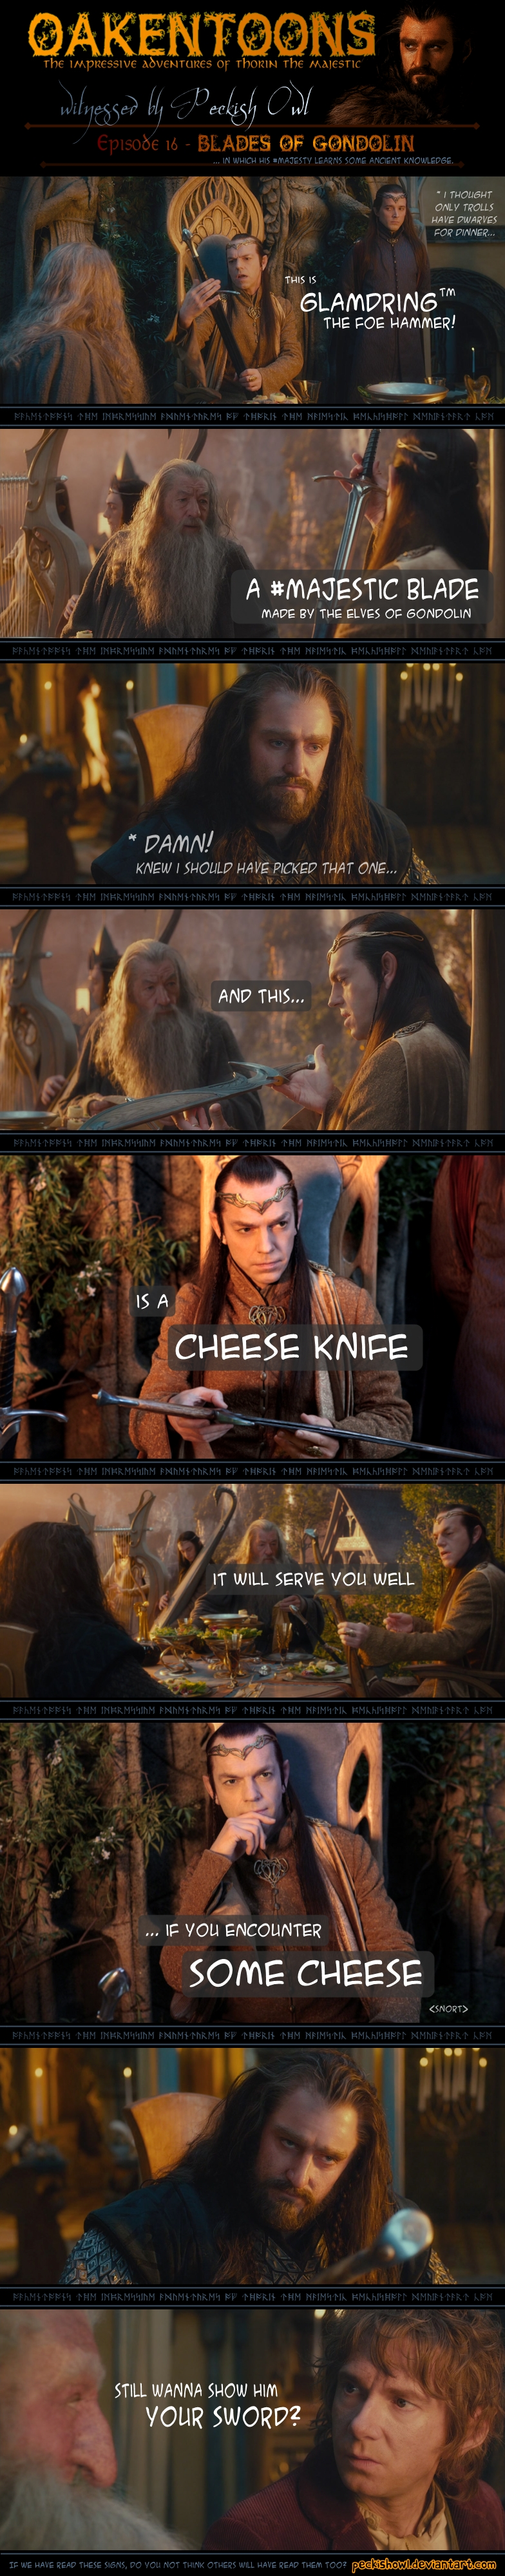 Oakentoon #16: Blades of Gondolin by PeckishOwl